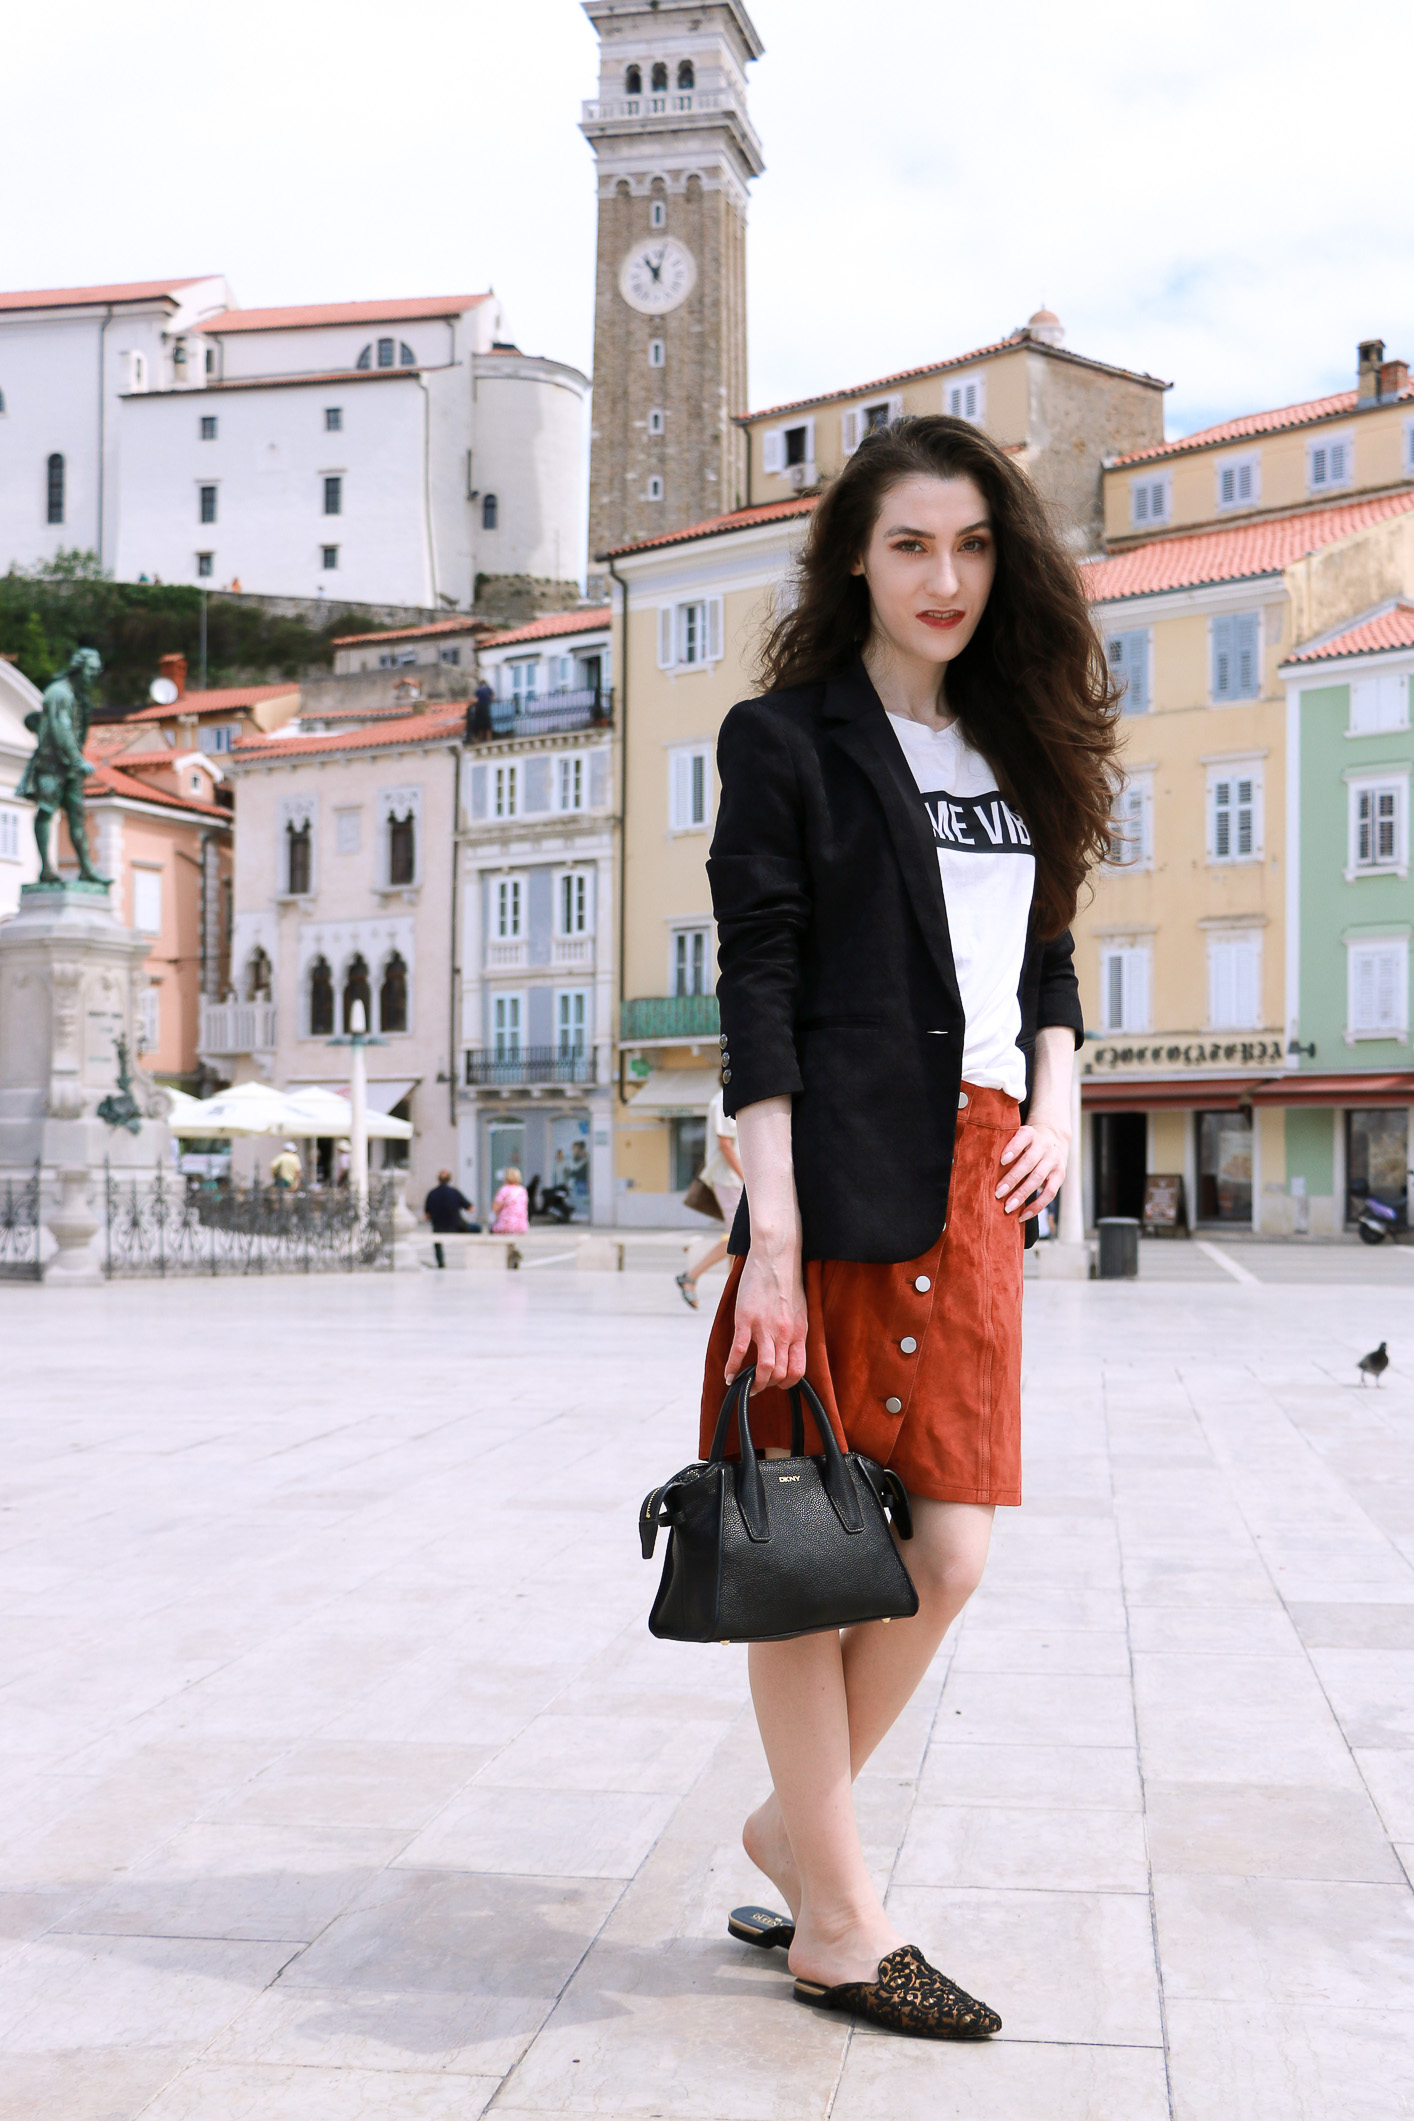 Fashion blogger Veronika Lipar of Brunette From Wall Street sharing how to wear slogan tee, mini brown suede skirt and black slippers to breakfast with girlfriends this summer